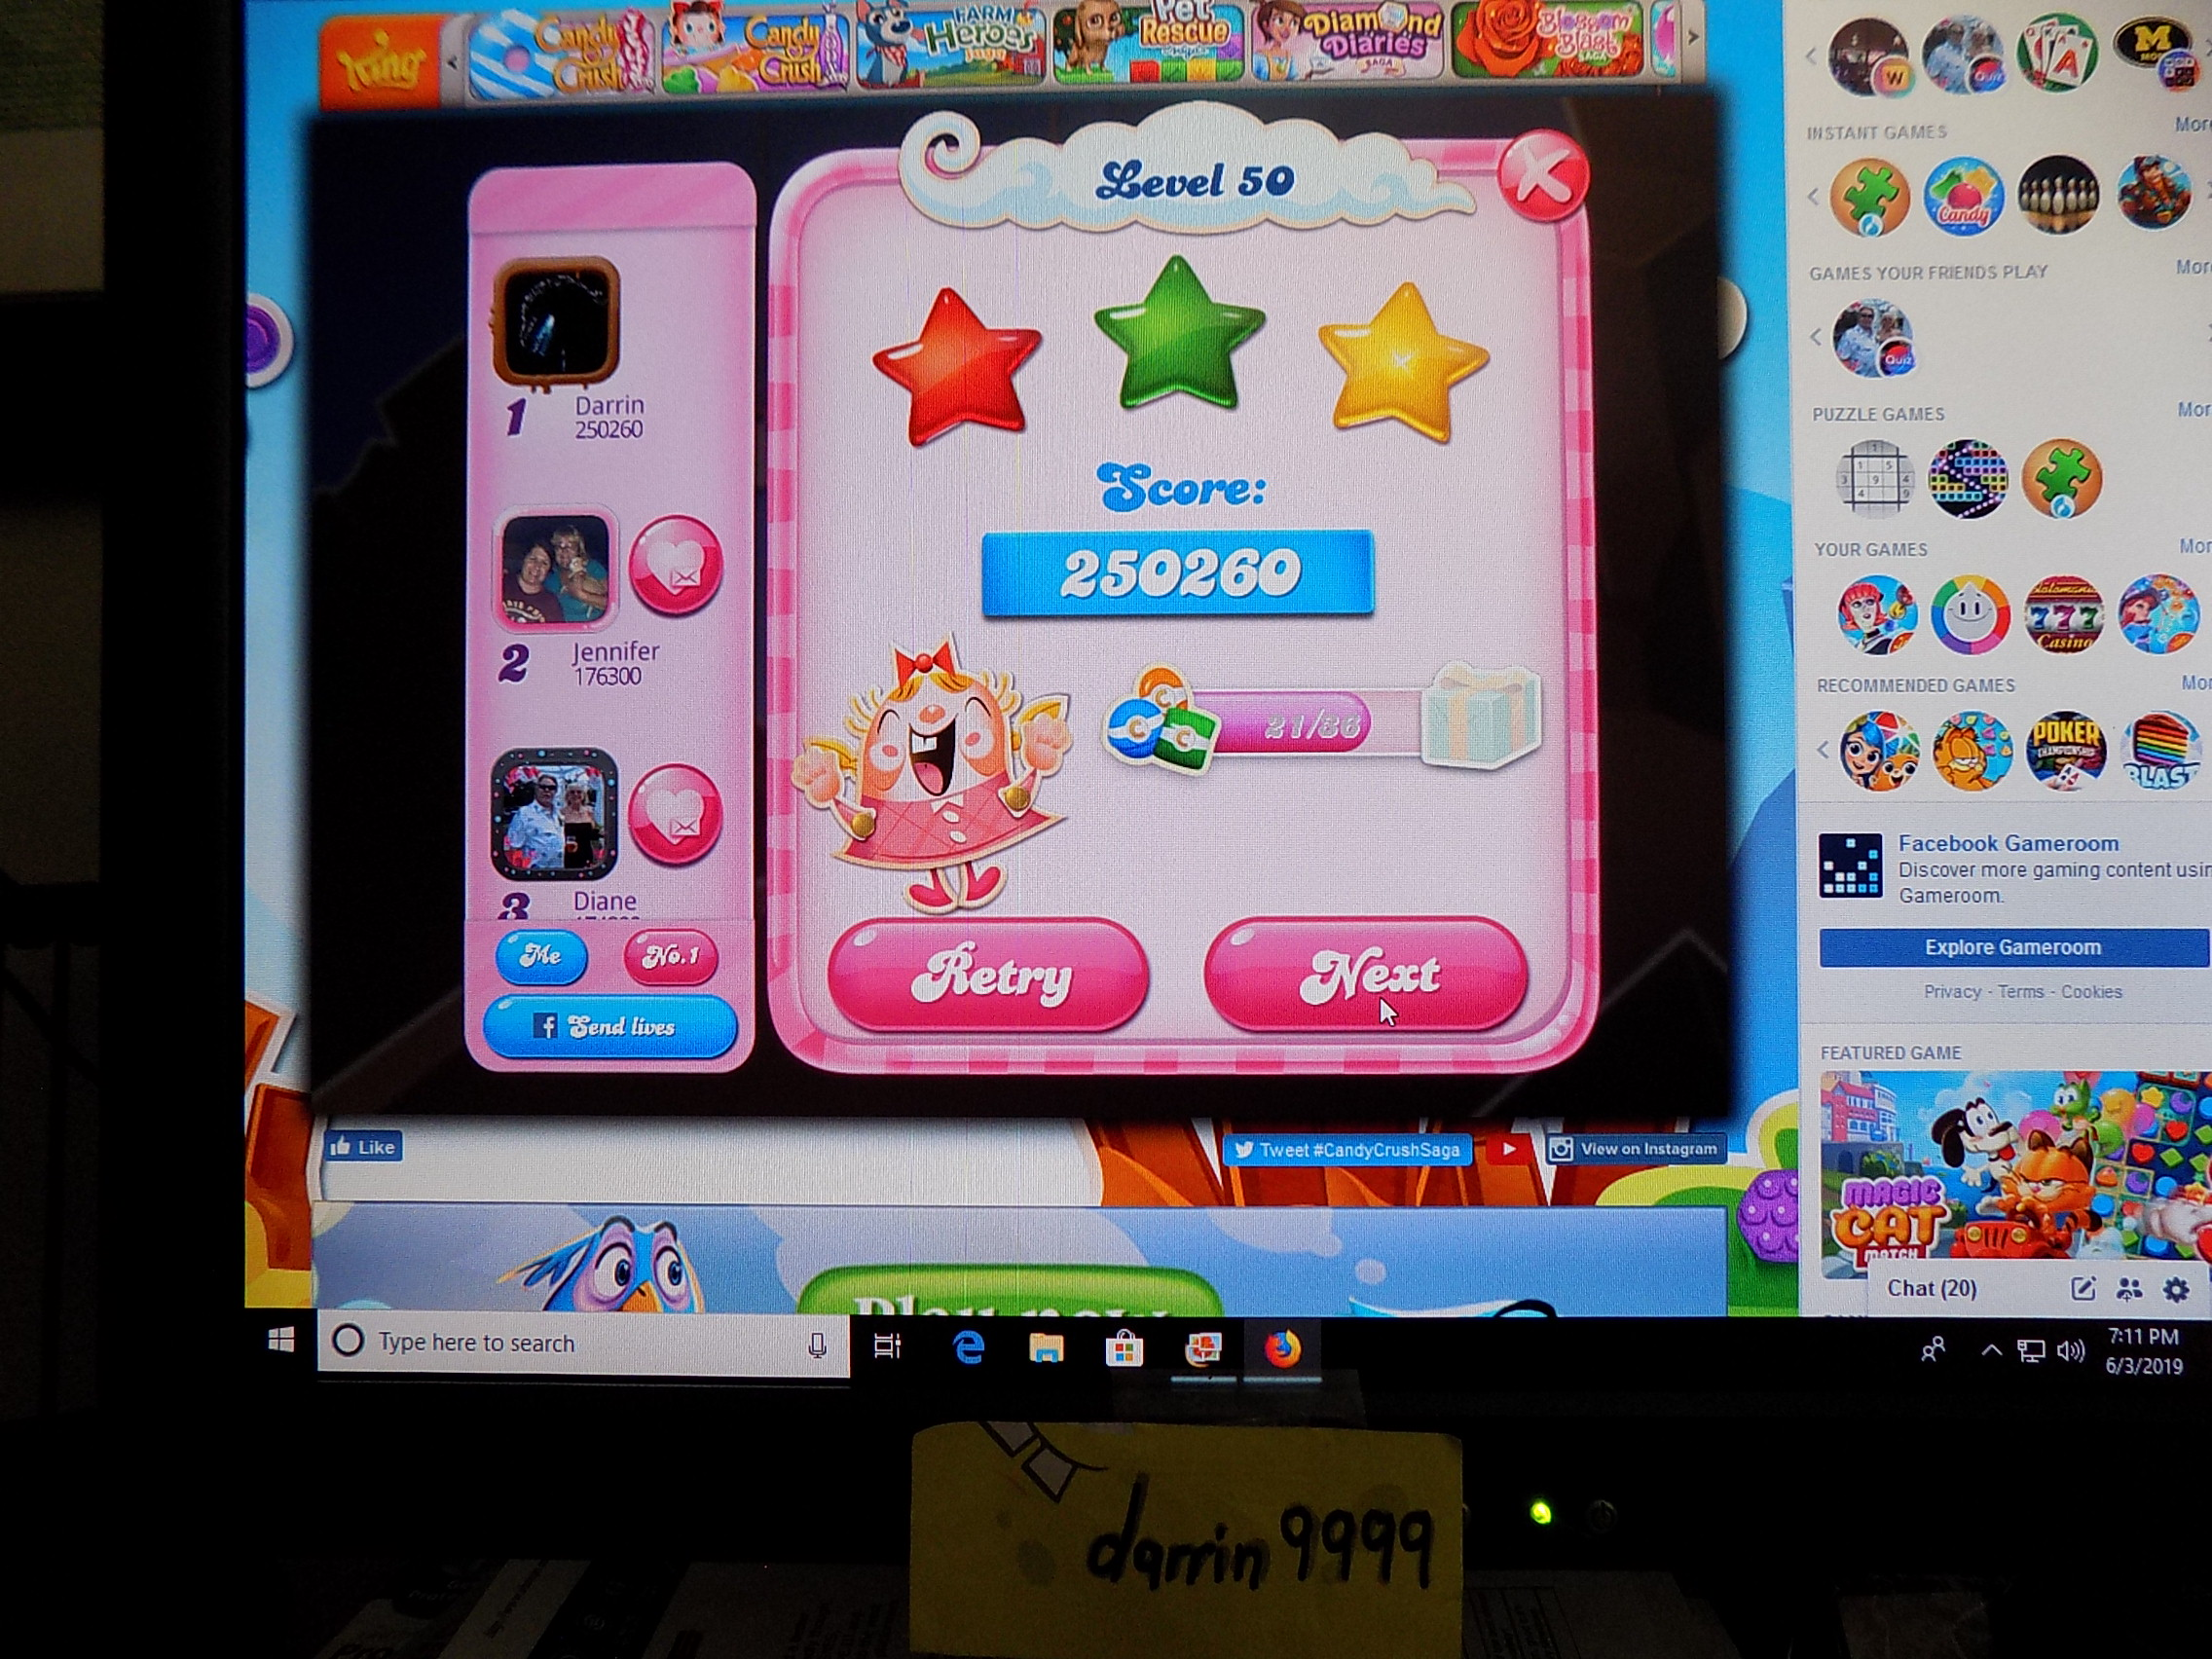 darrin9999: Candy Crush Saga: Level 050 (Web) 250,260 points on 2019-06-05 16:03:48